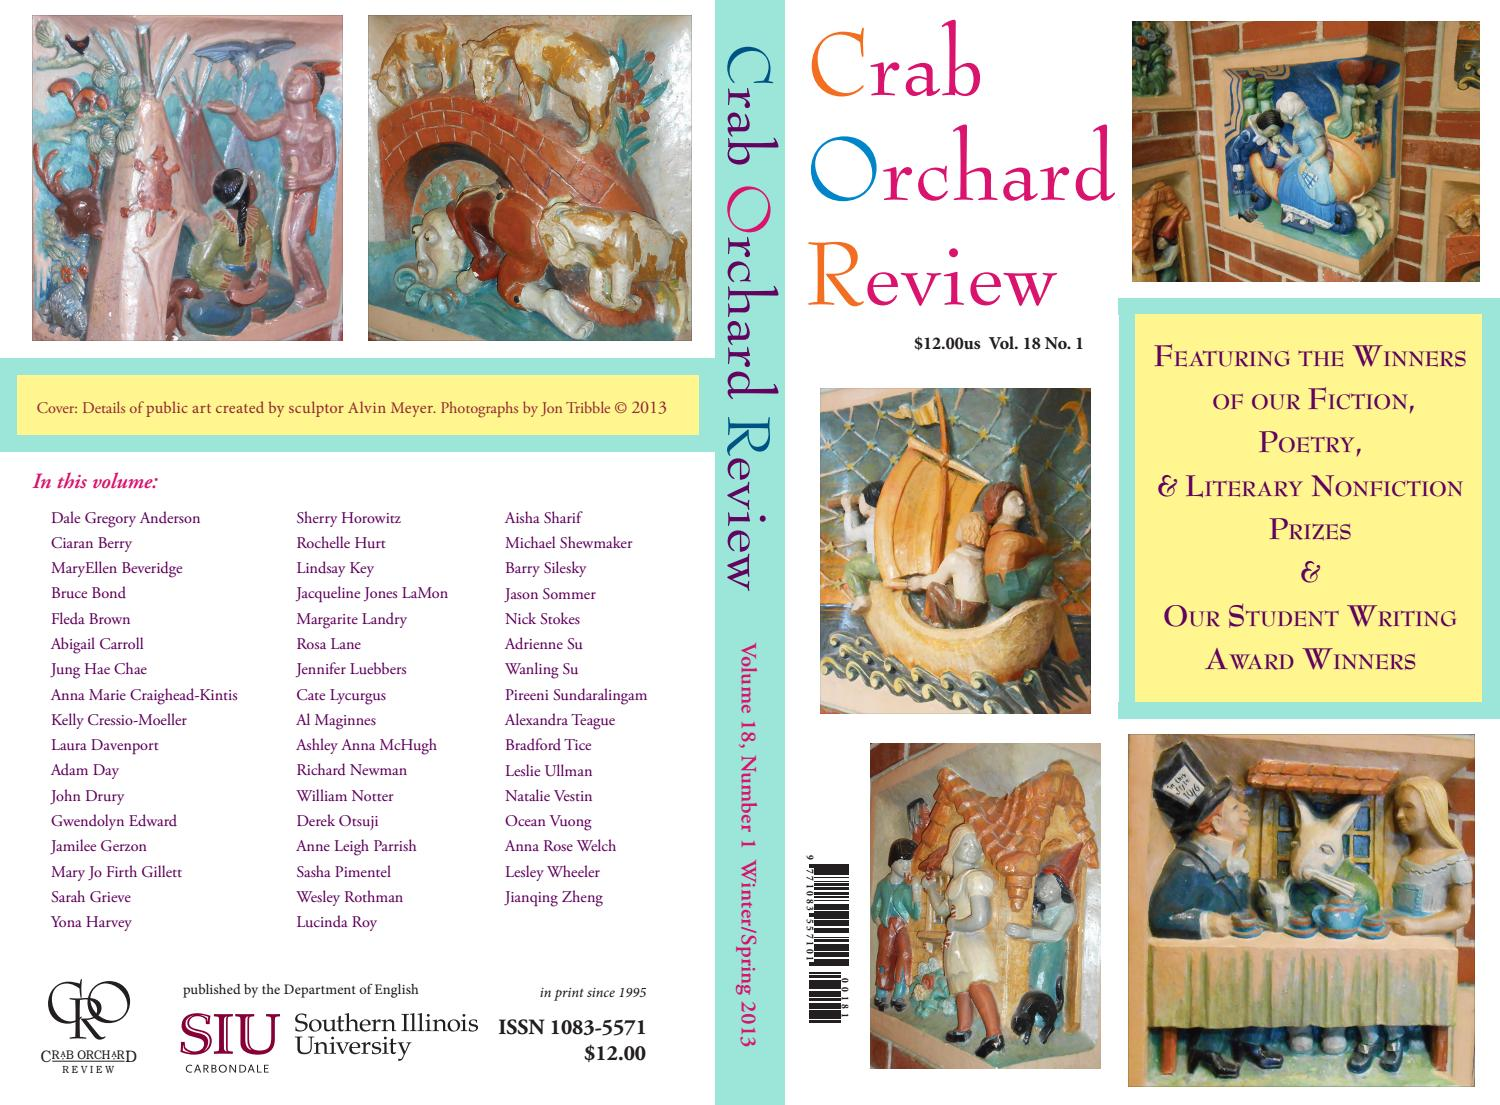 Crab Orchard Review Vol 18 No 1 W S 2013 By Issuu Pics Photos Origami Diagram Pic 3 Www Guide Com 63 Kb